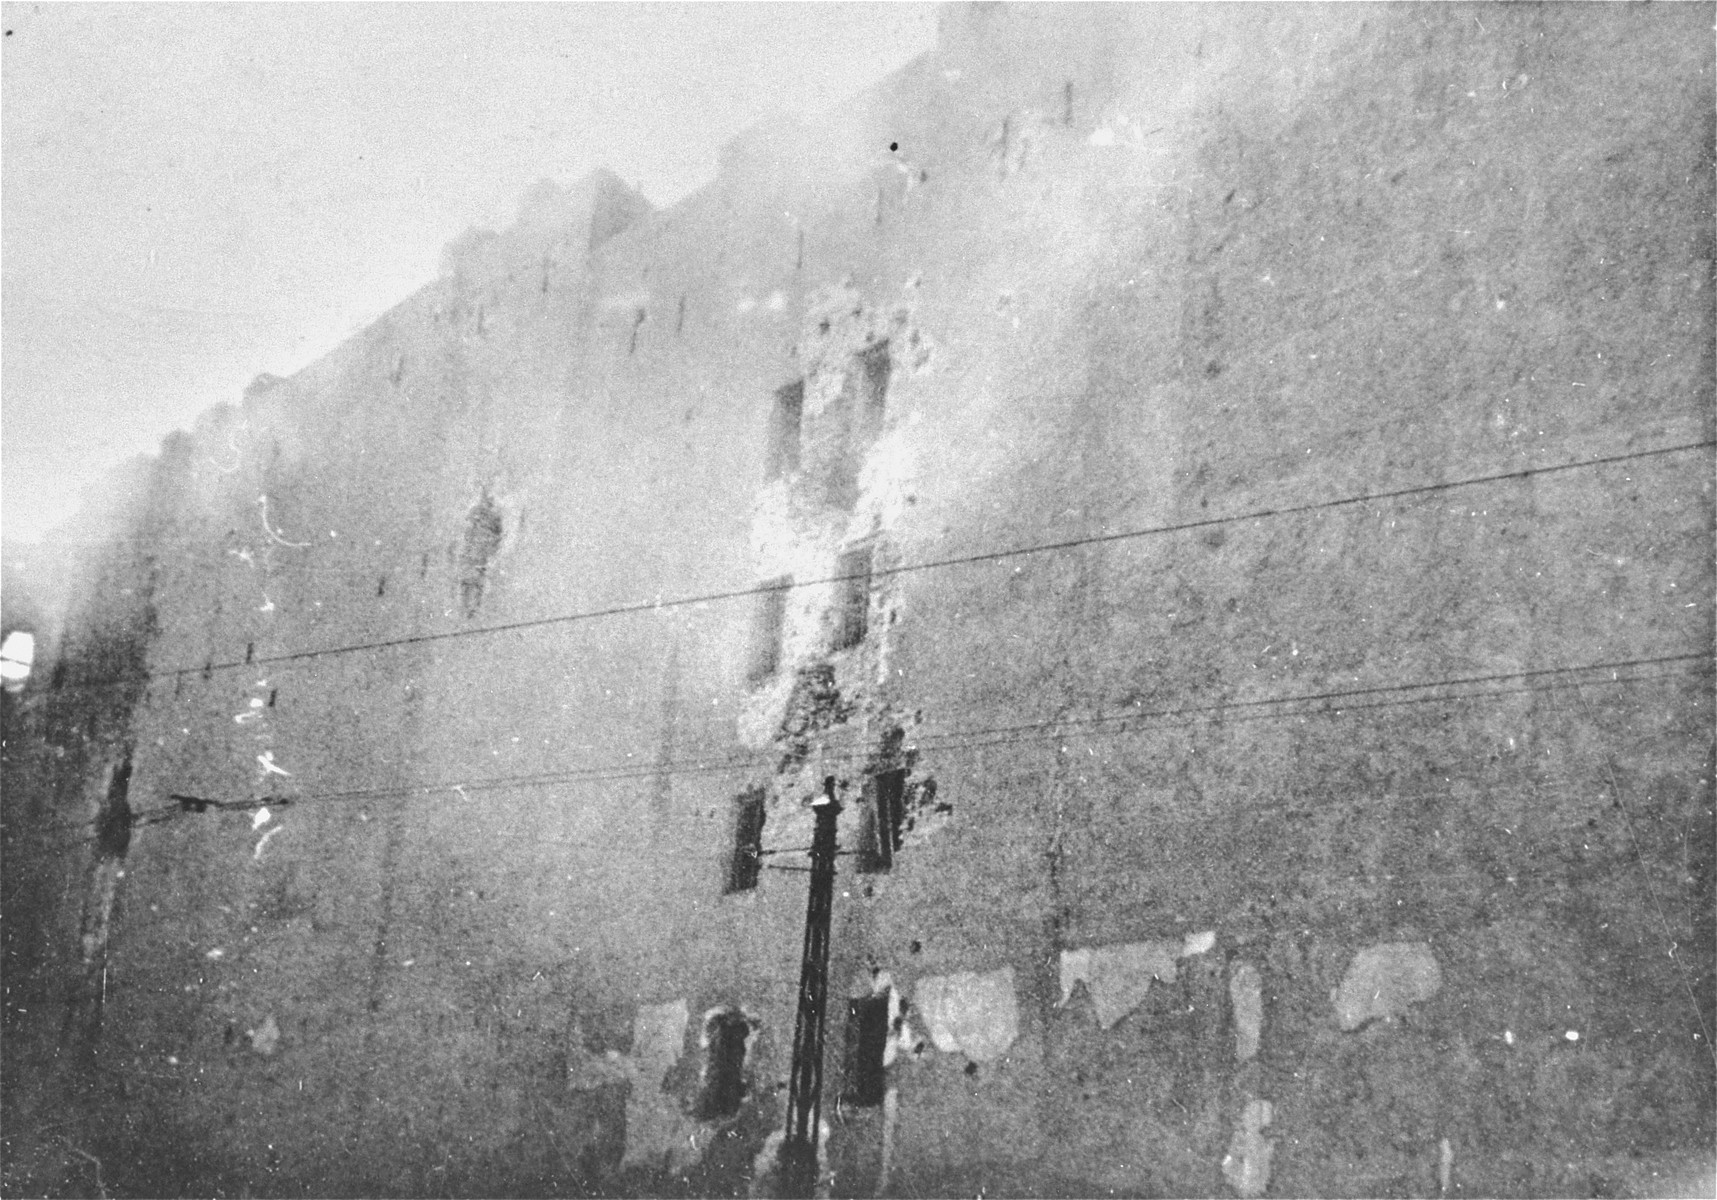 An apartment building destroyed by the SS during the suppression of the Warsaw ghetto uprising.